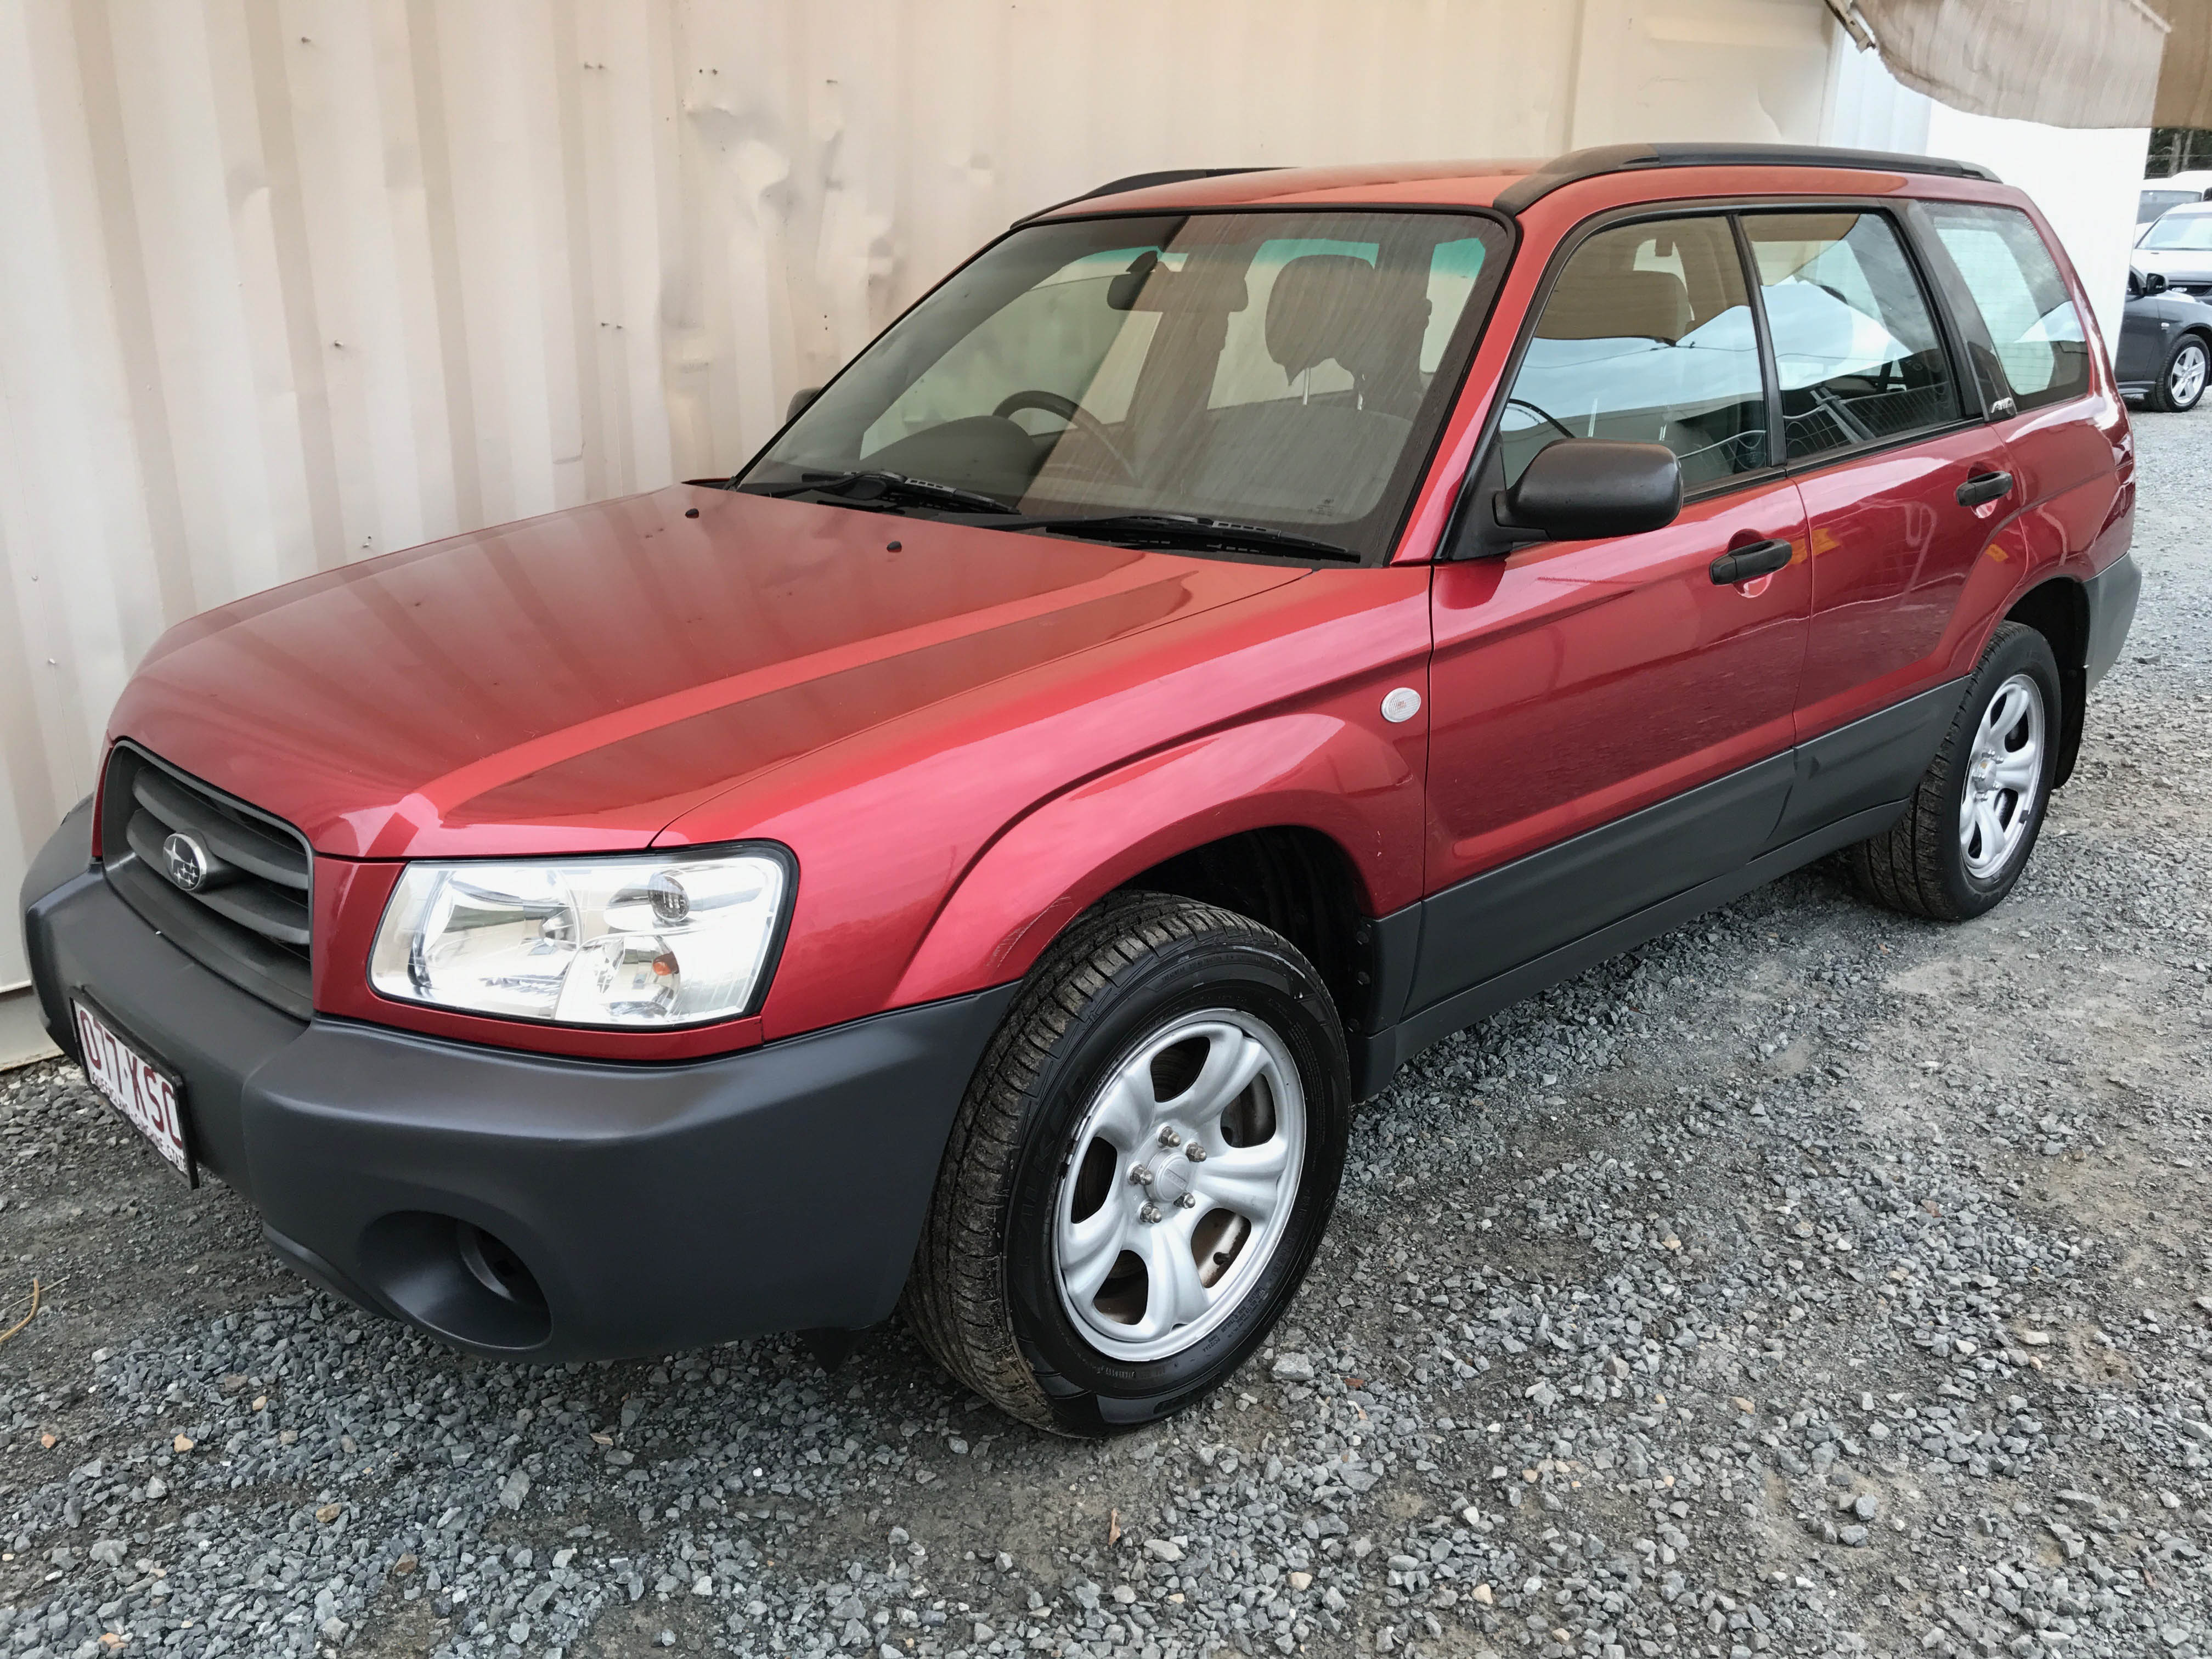 sold 4cyl awd wagon subaru forester 2 5 x 2003 used vehicle sales. Black Bedroom Furniture Sets. Home Design Ideas